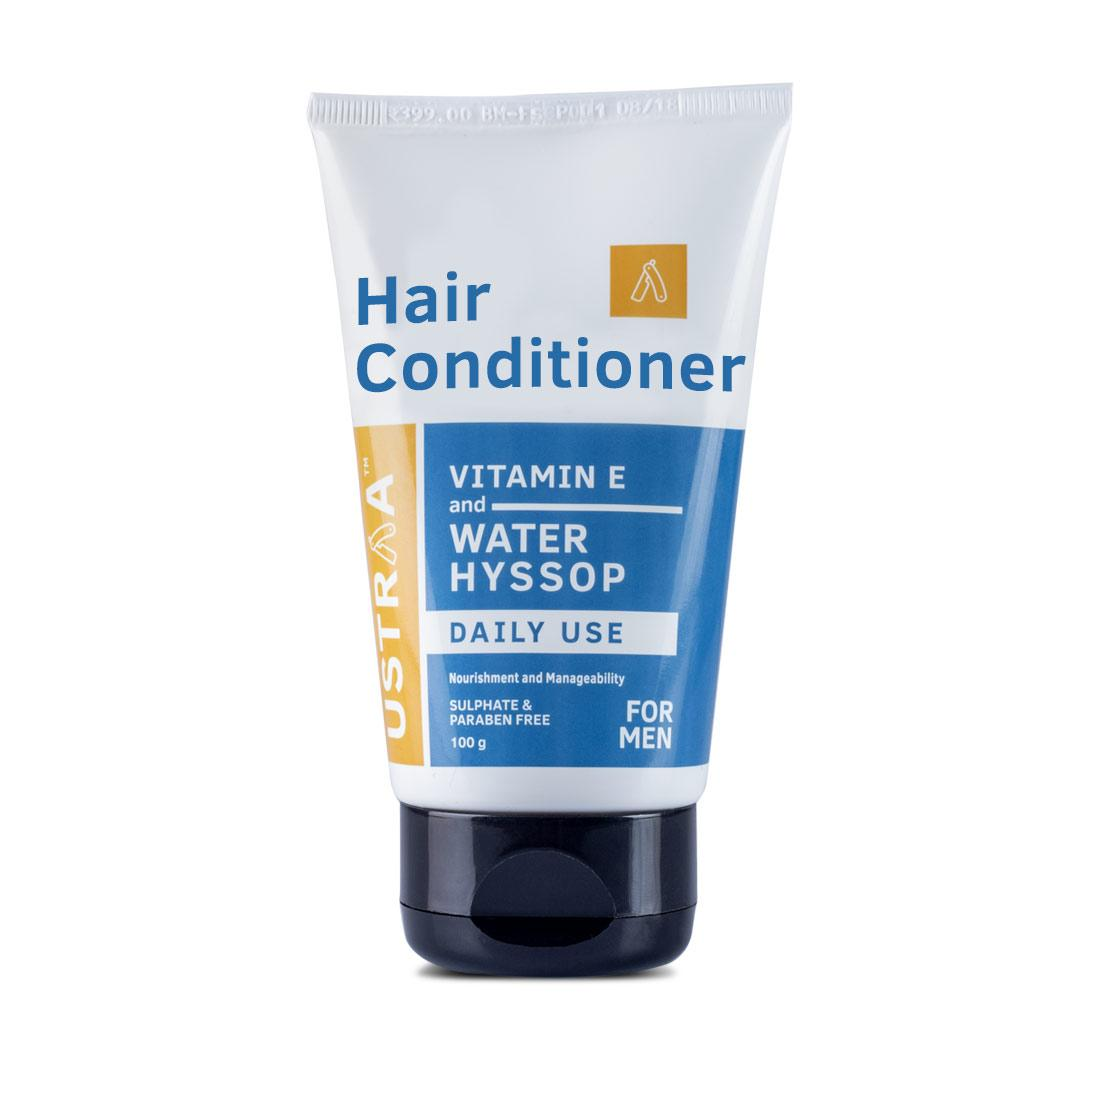 Ustraa Daily Use Hair Conditioner 100g - Hair Conditioner for men with Water Hyssop and Brahmi for strong follicles and split ends